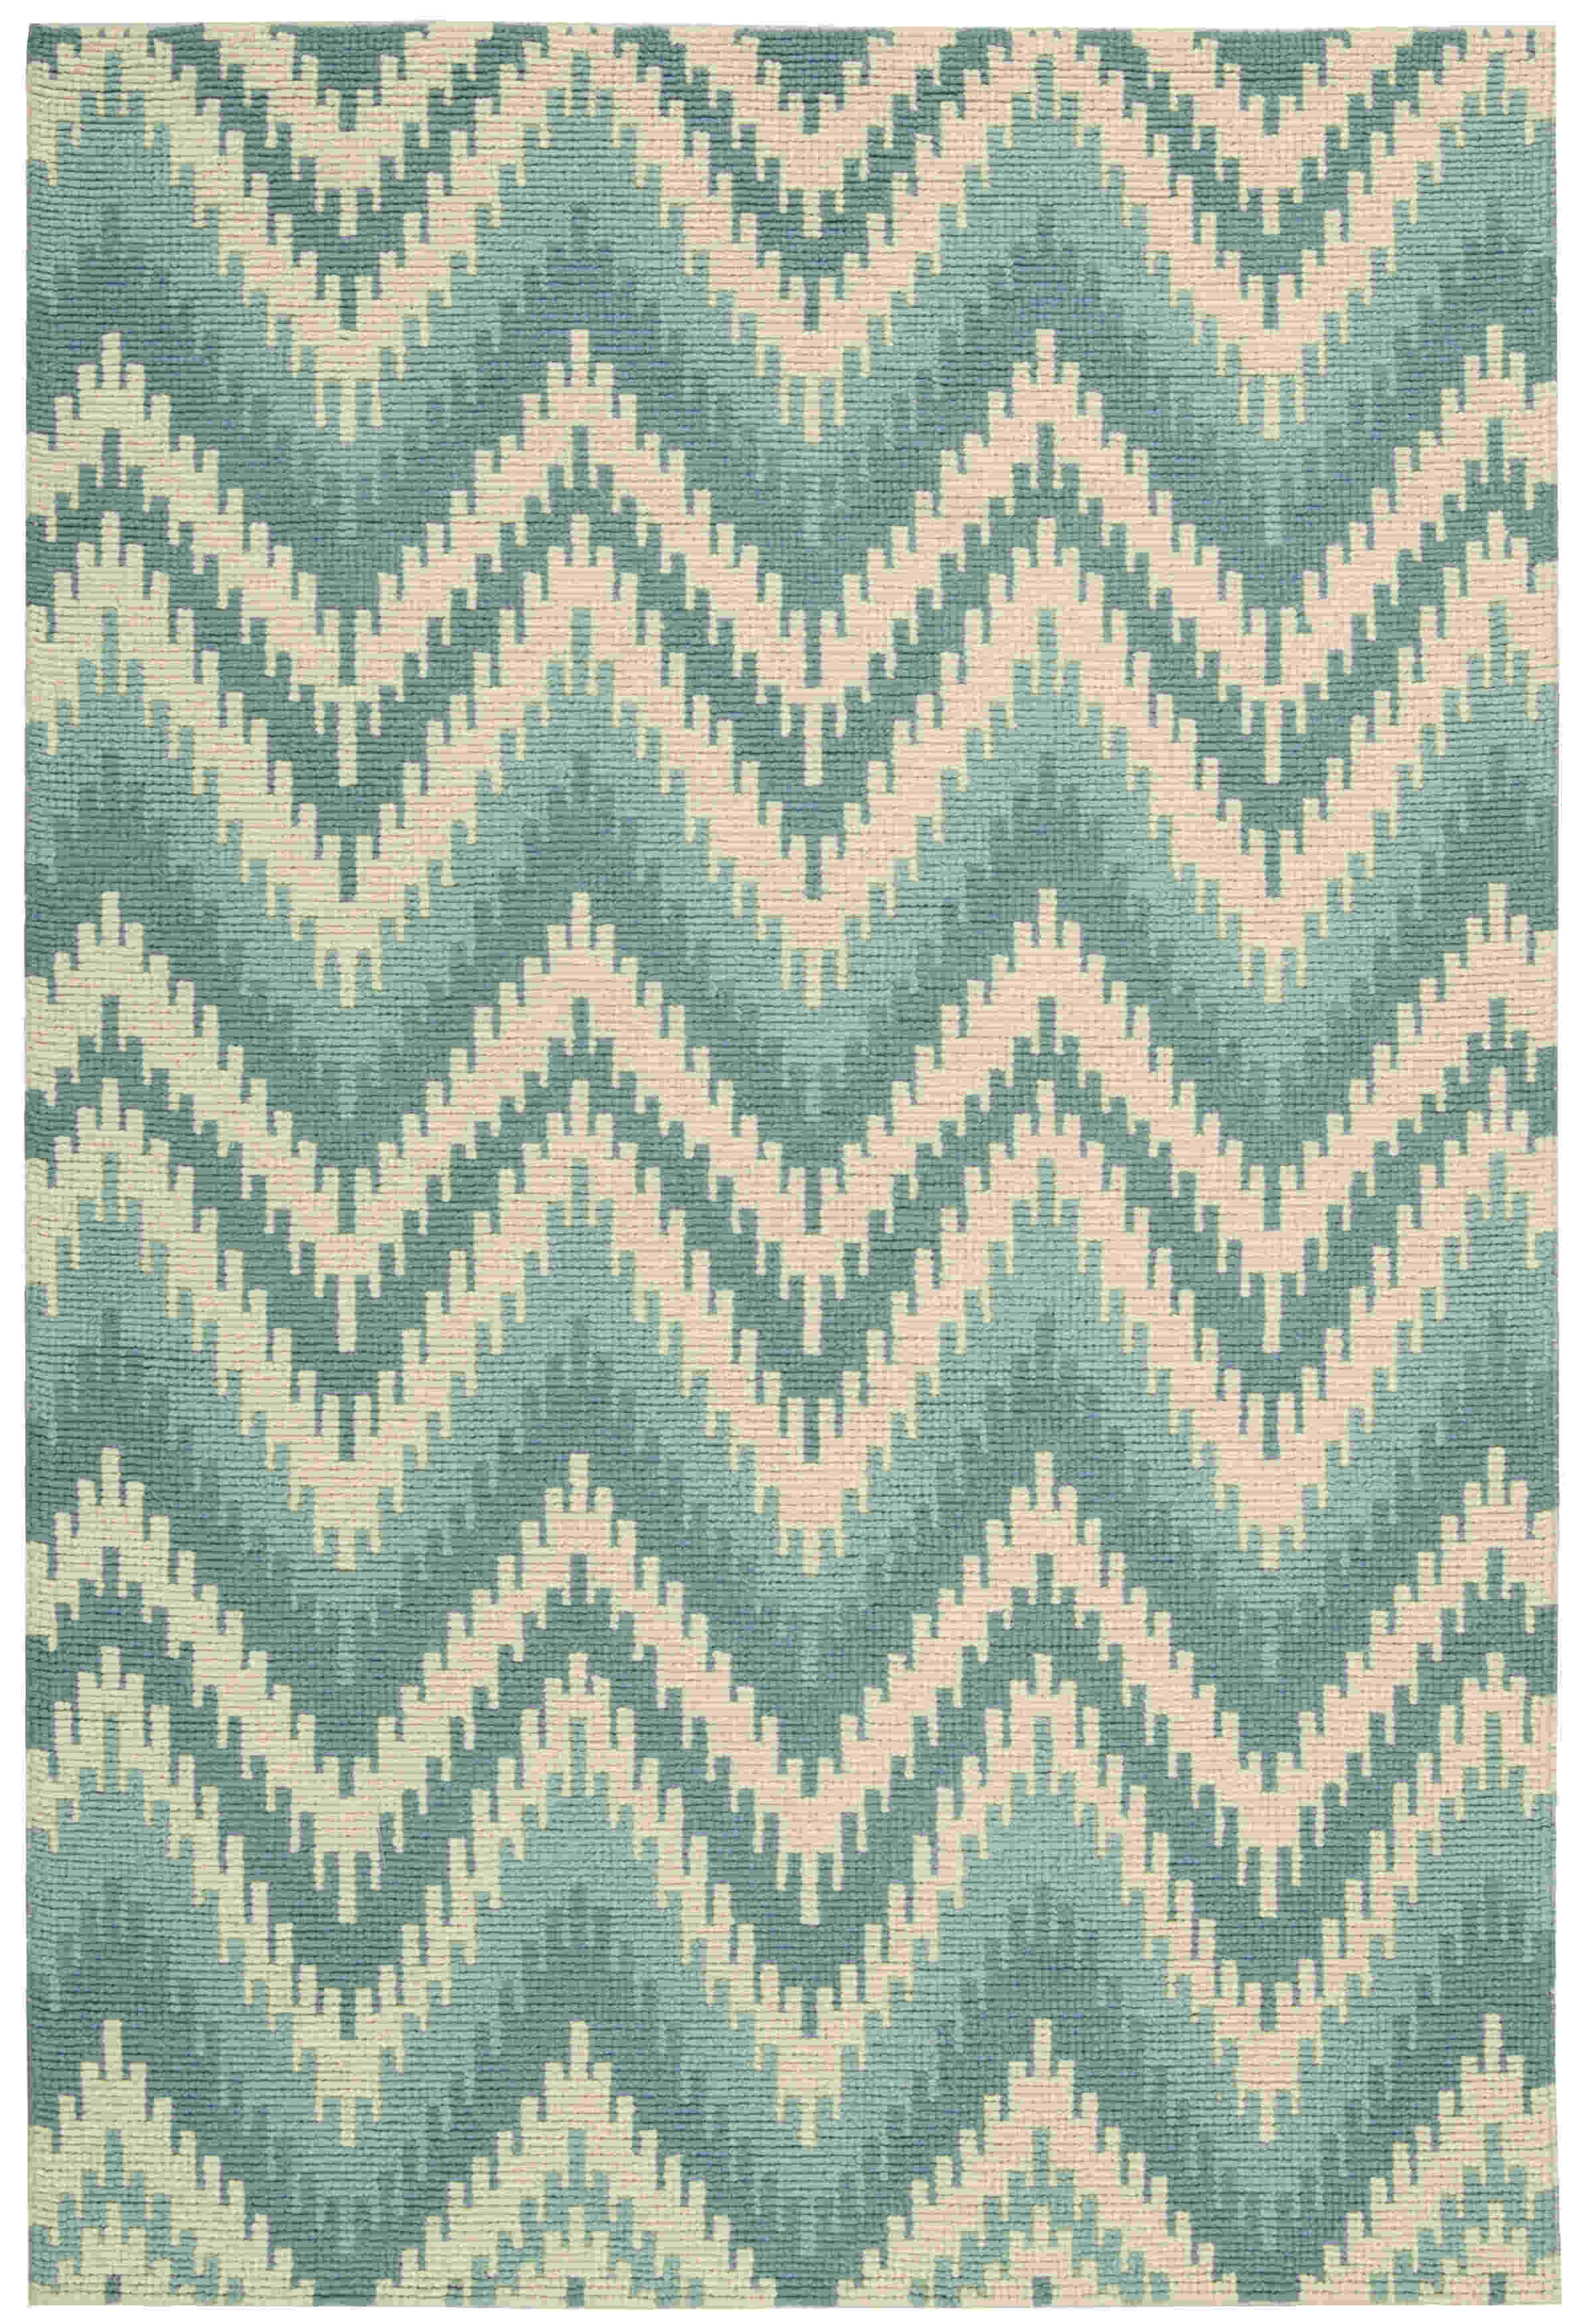 Barclay Butera Prism Pacific Area Rug By Nourison